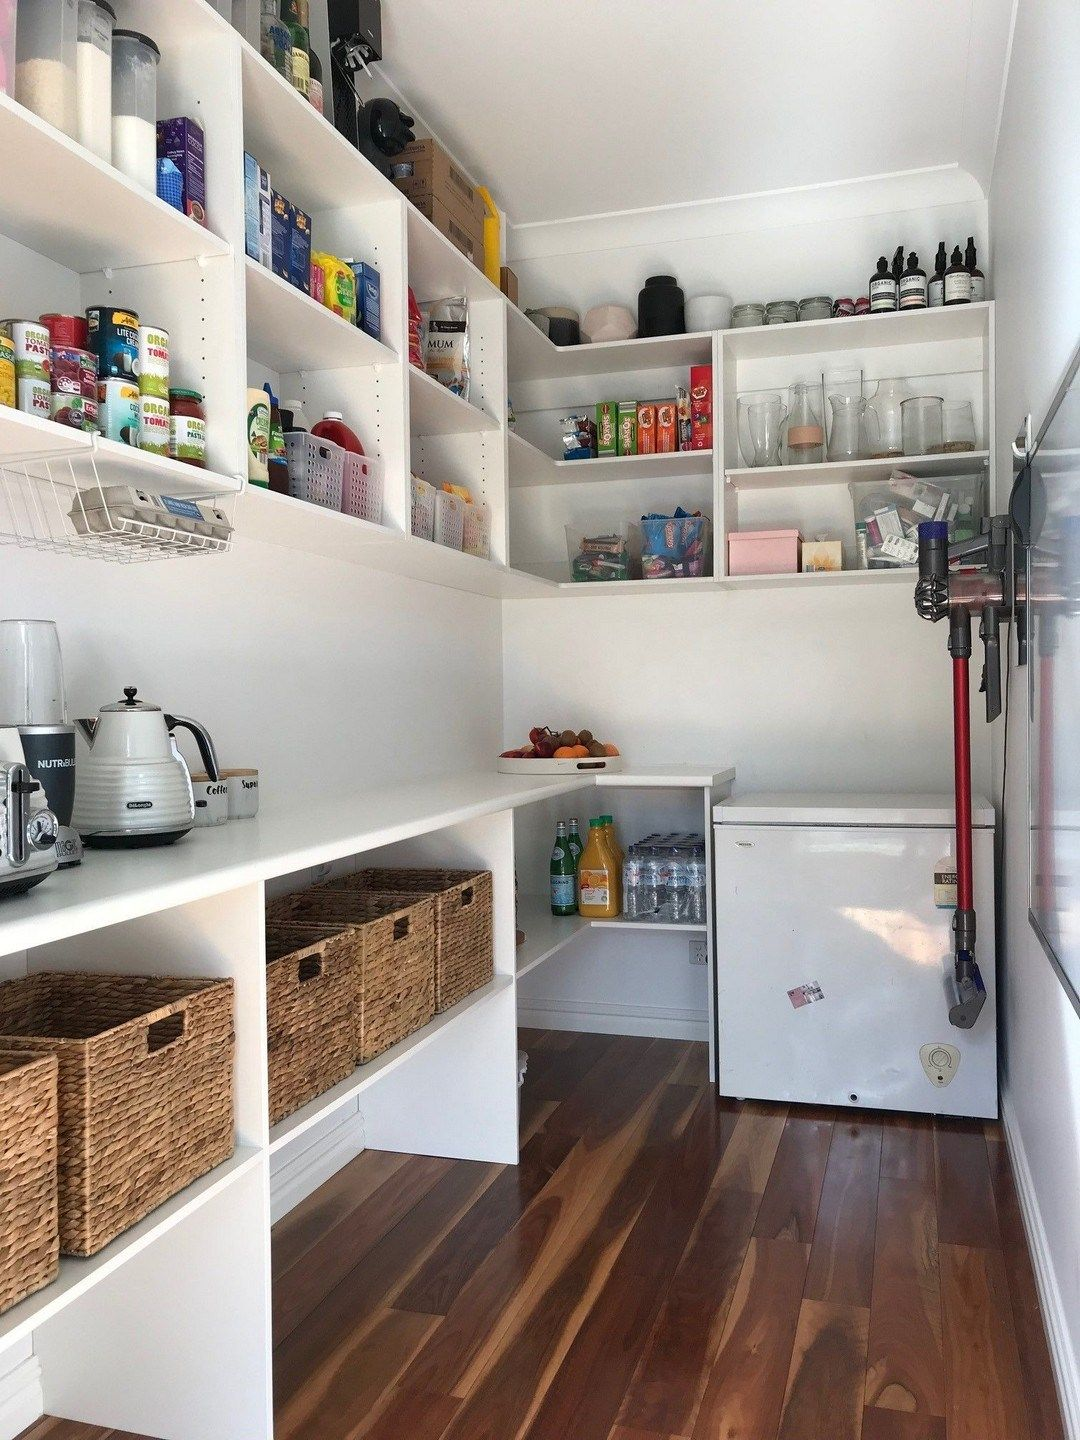 185 farmhouse pantry before after organization farmhouse room in 2020 pantry design pantry on kitchen organization before and after id=87169